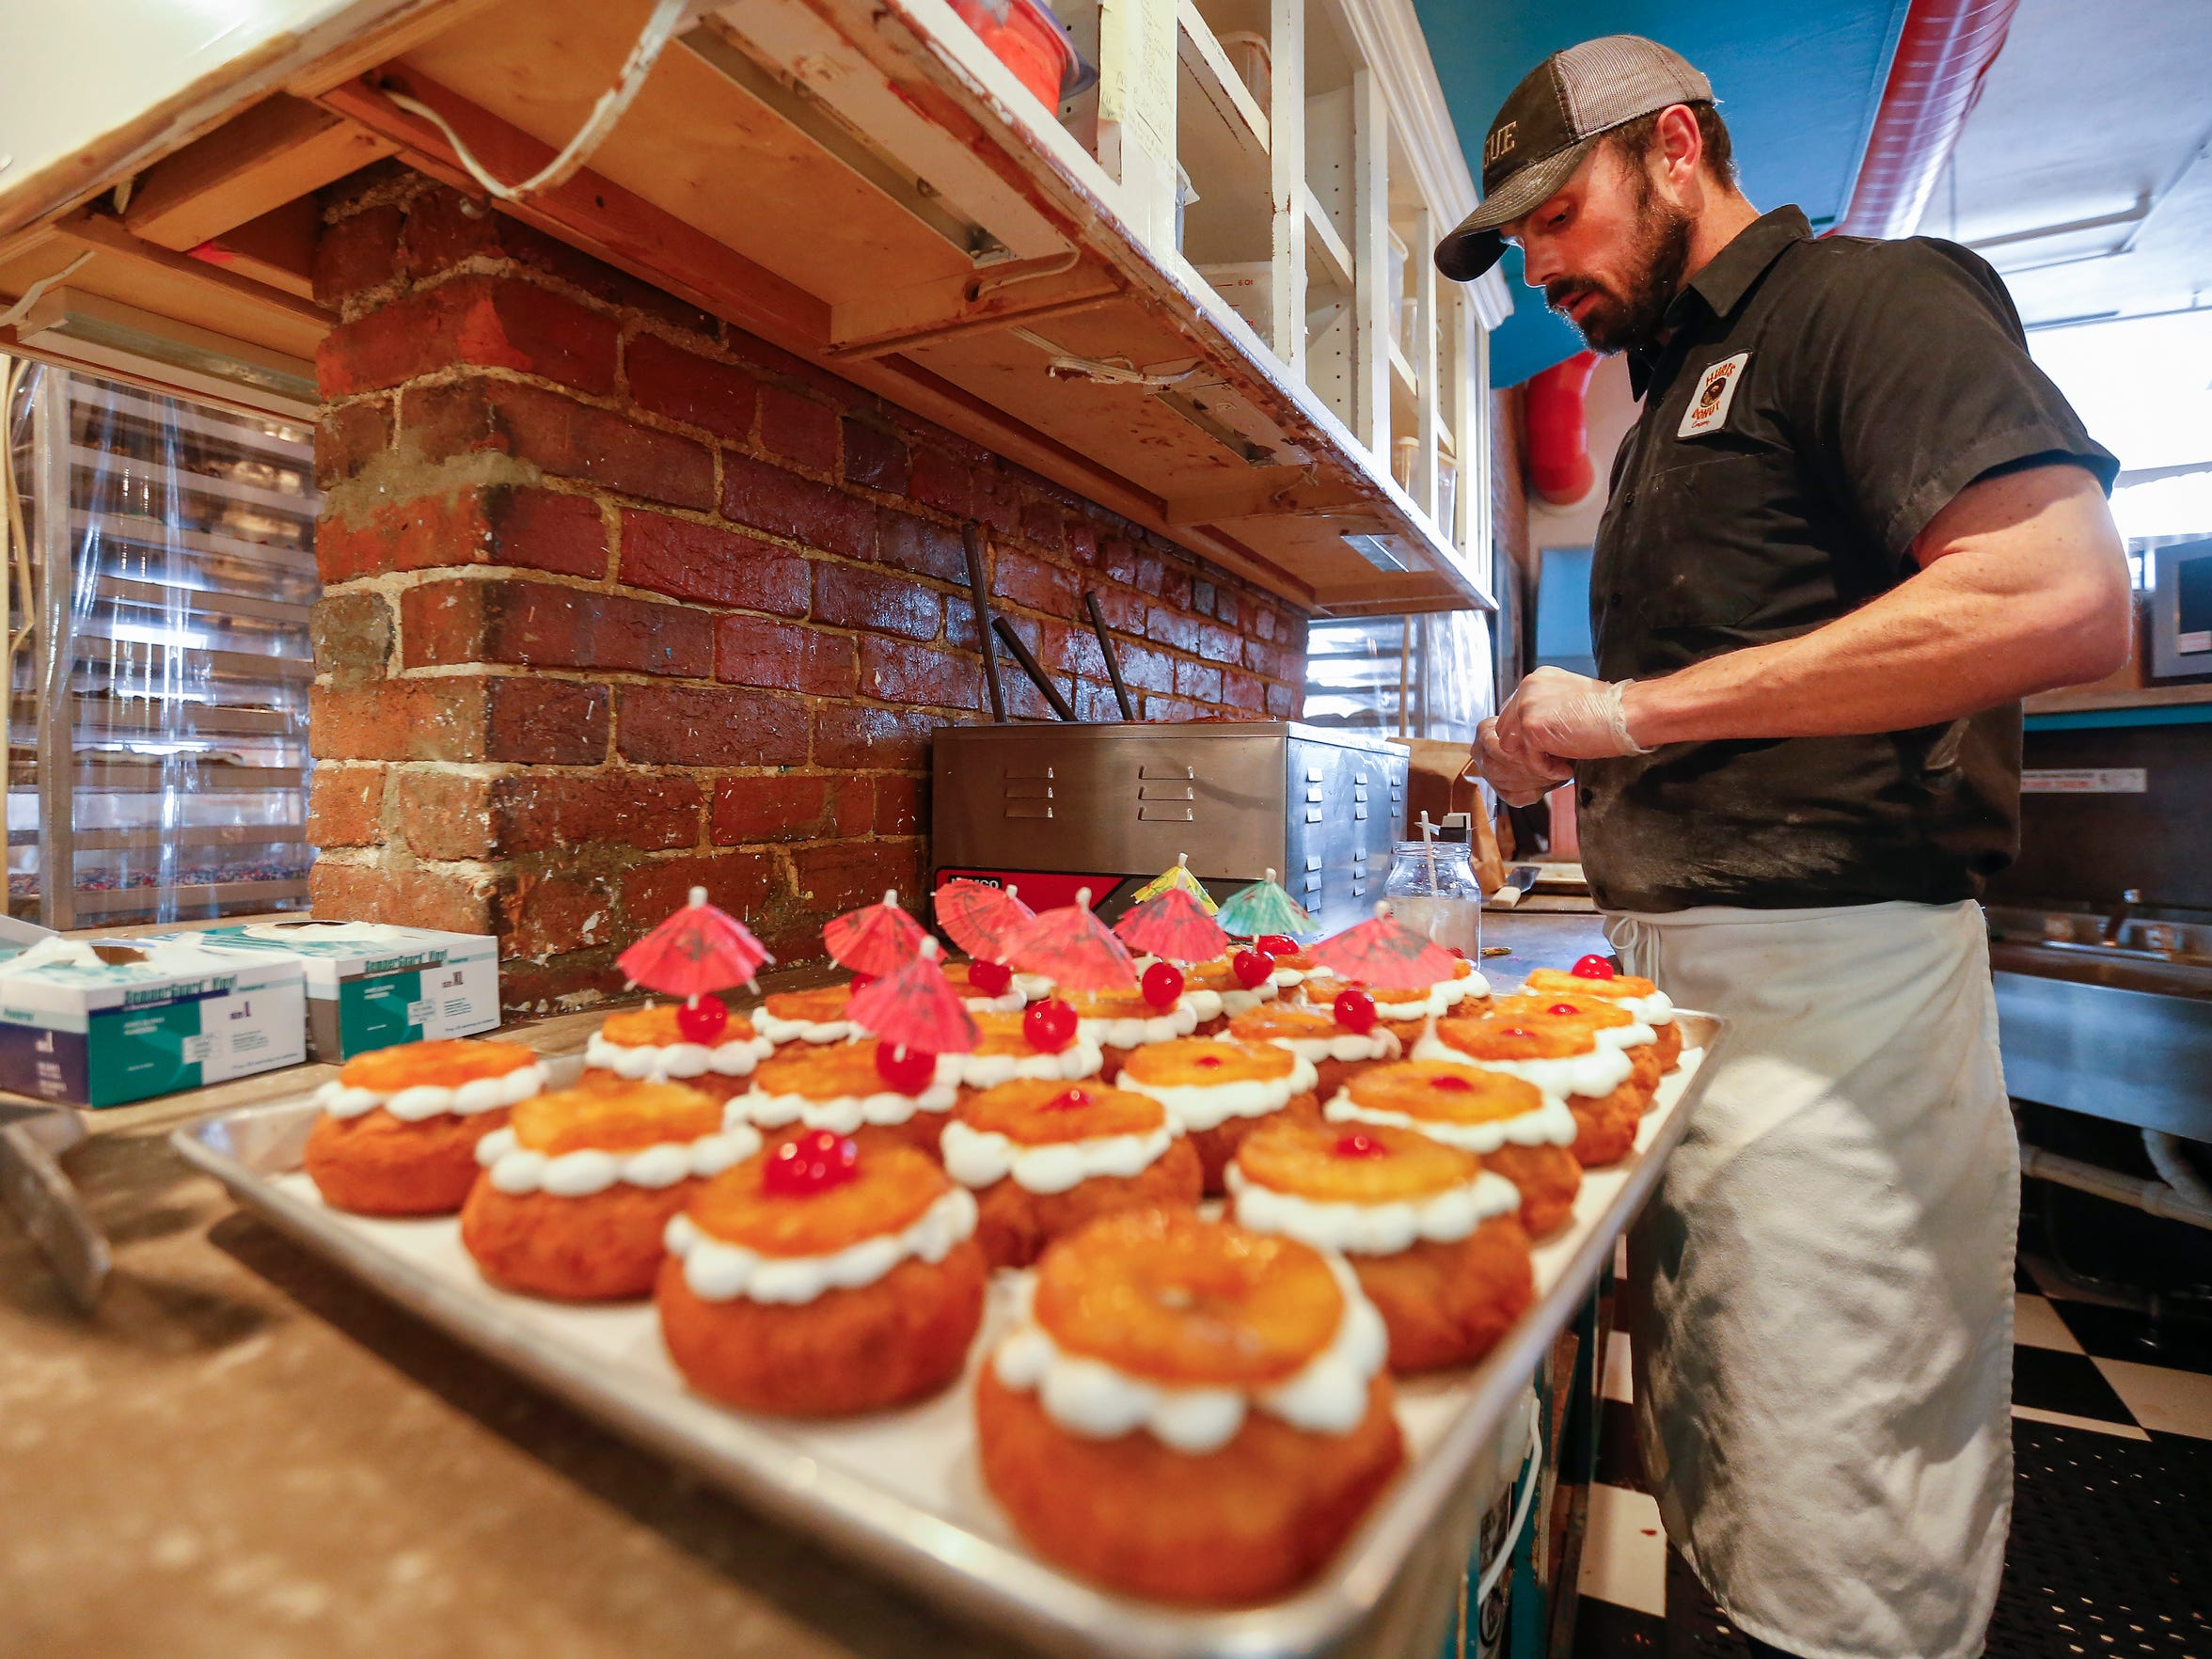 Ian Carleton, lead baker at Hurts Donut in downtown